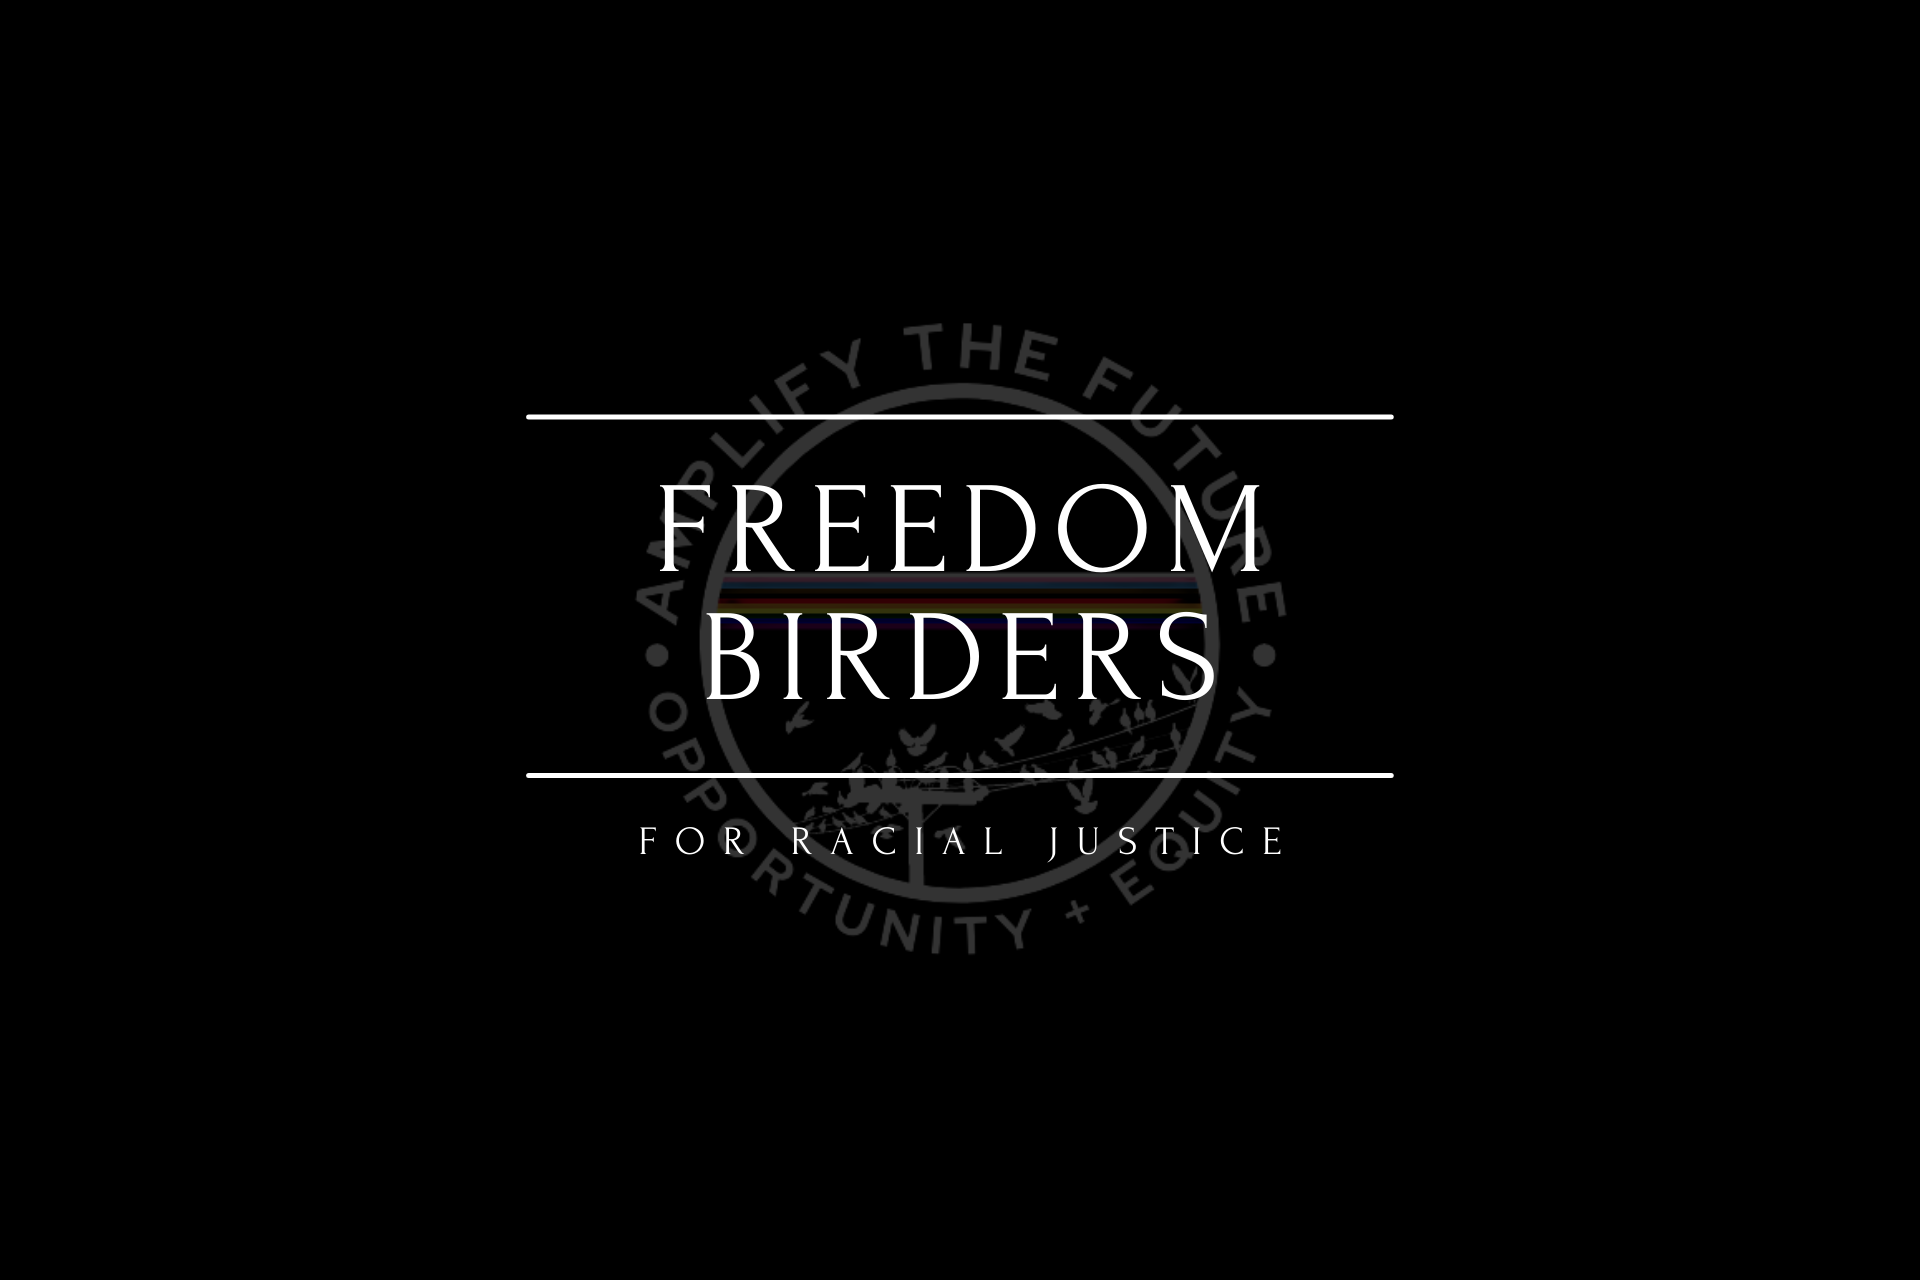 Text: Freedom Birders: For Racial Justice